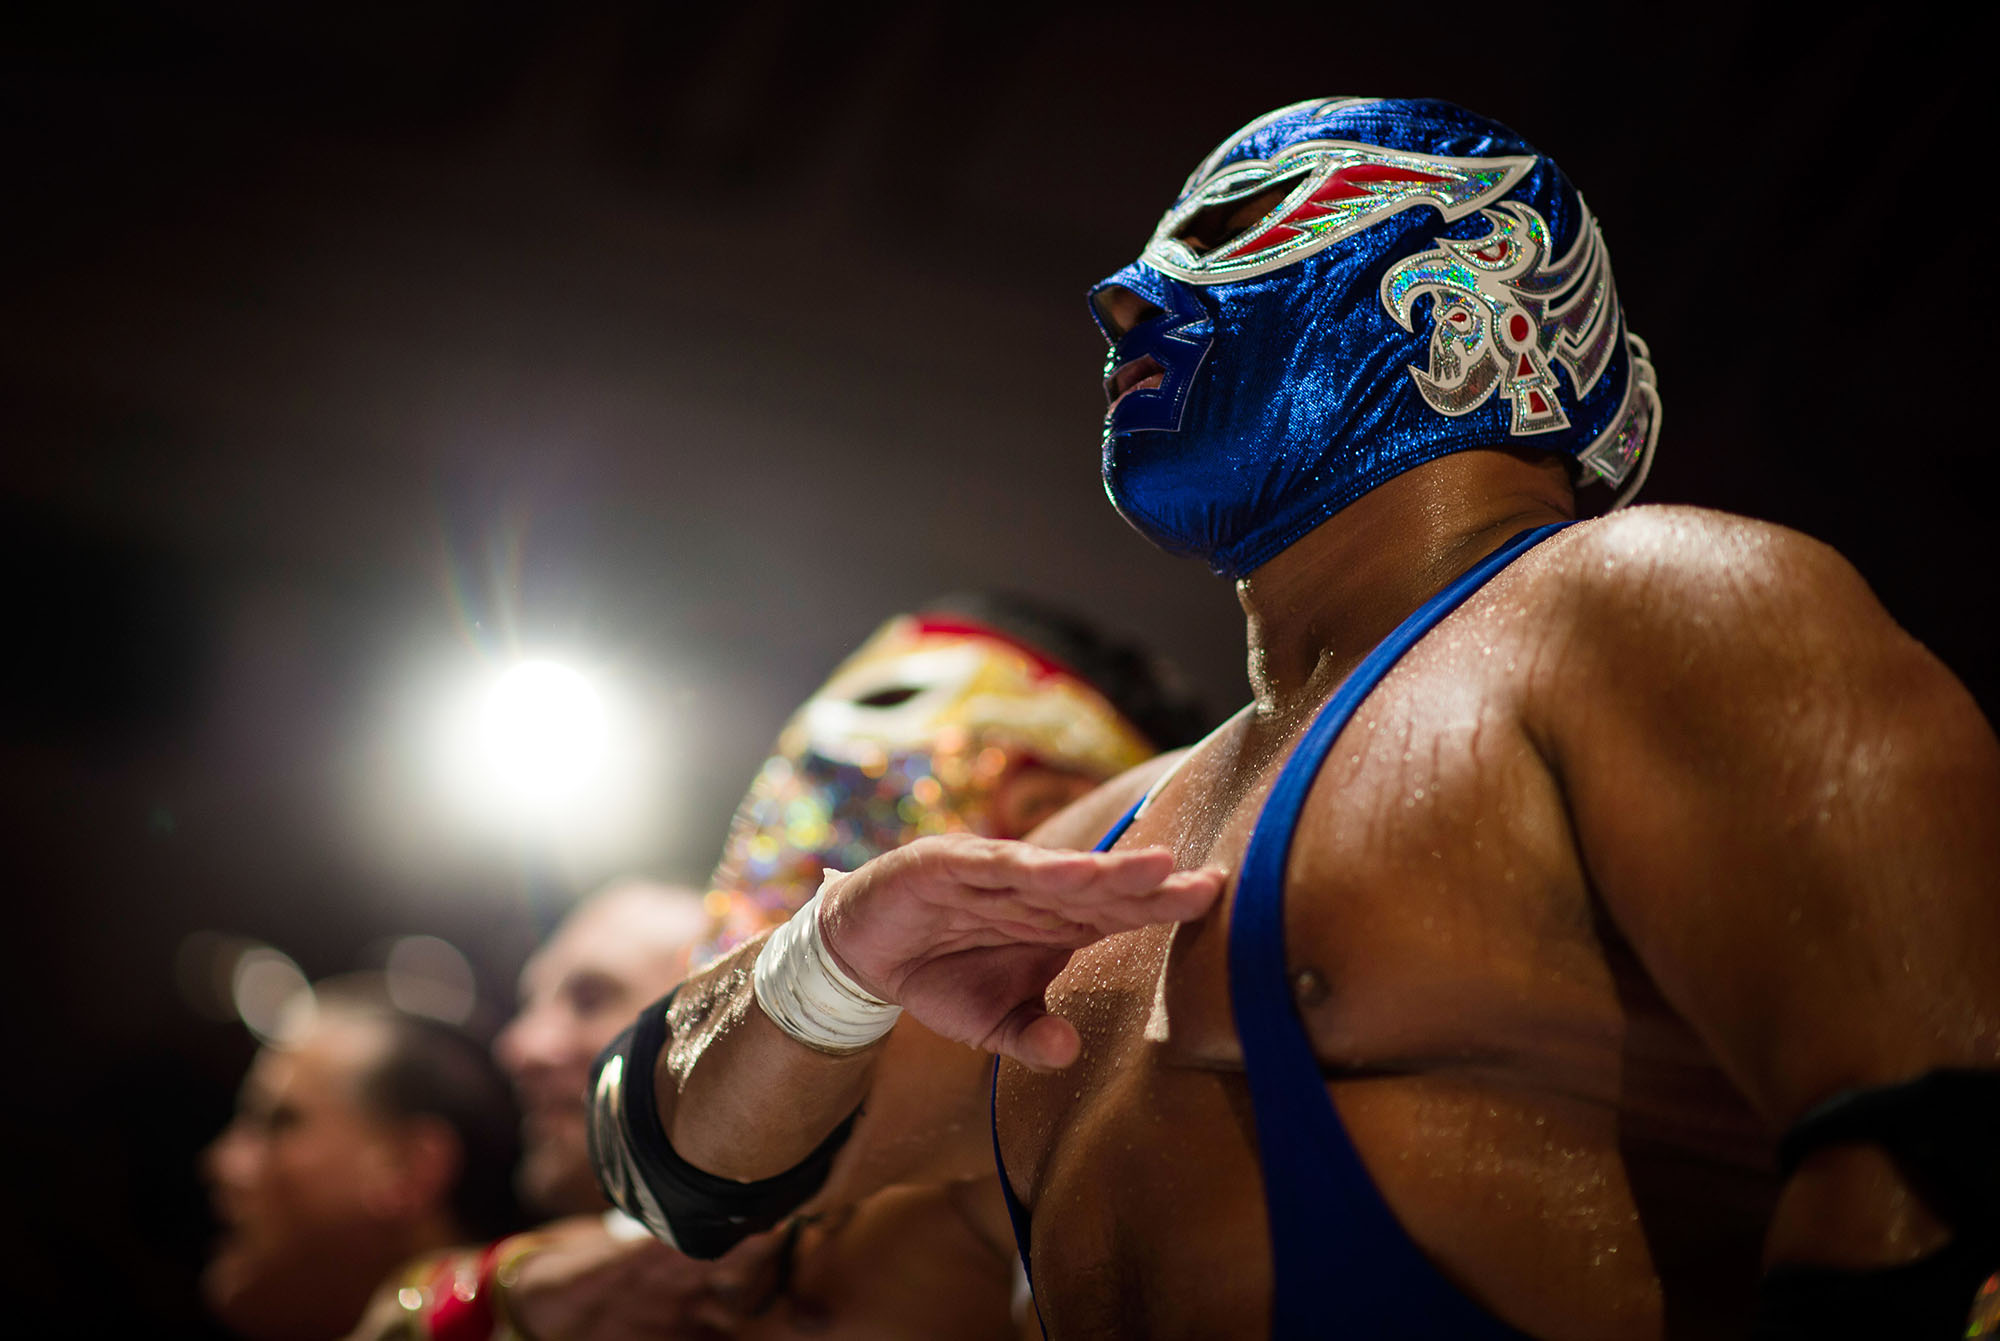 Lucha Libre: The Culture Of A** Kicking